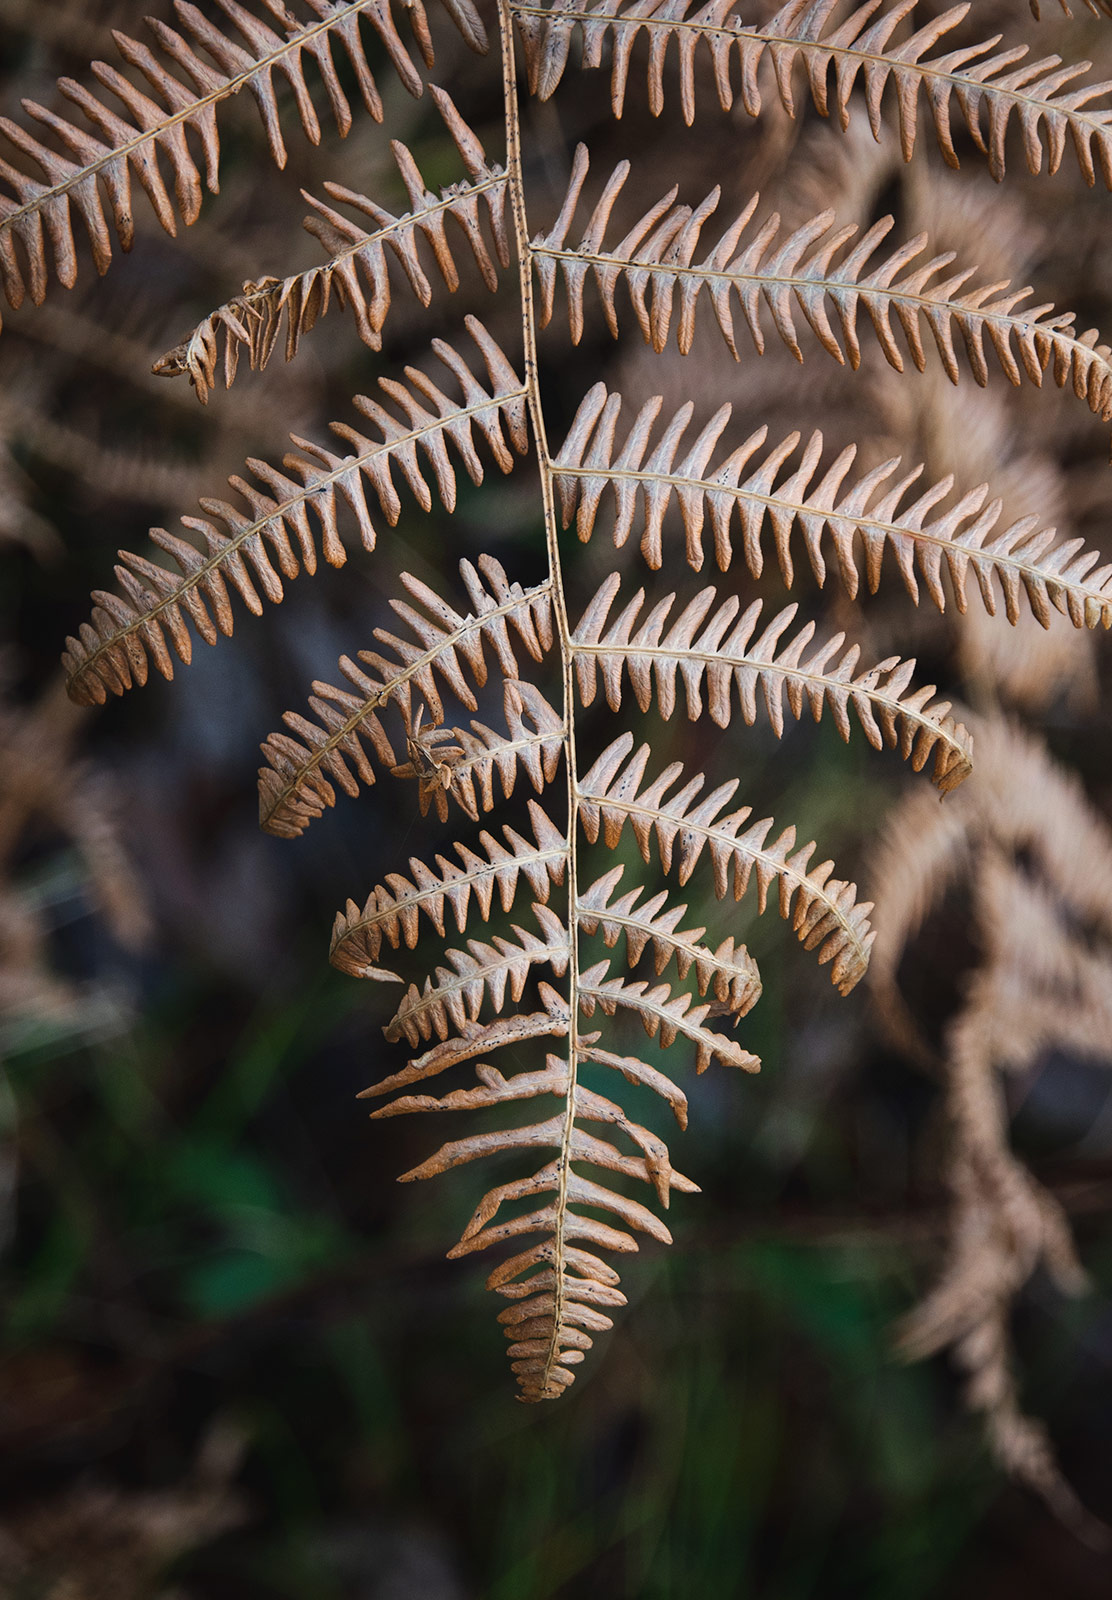 Closeup of orange fern